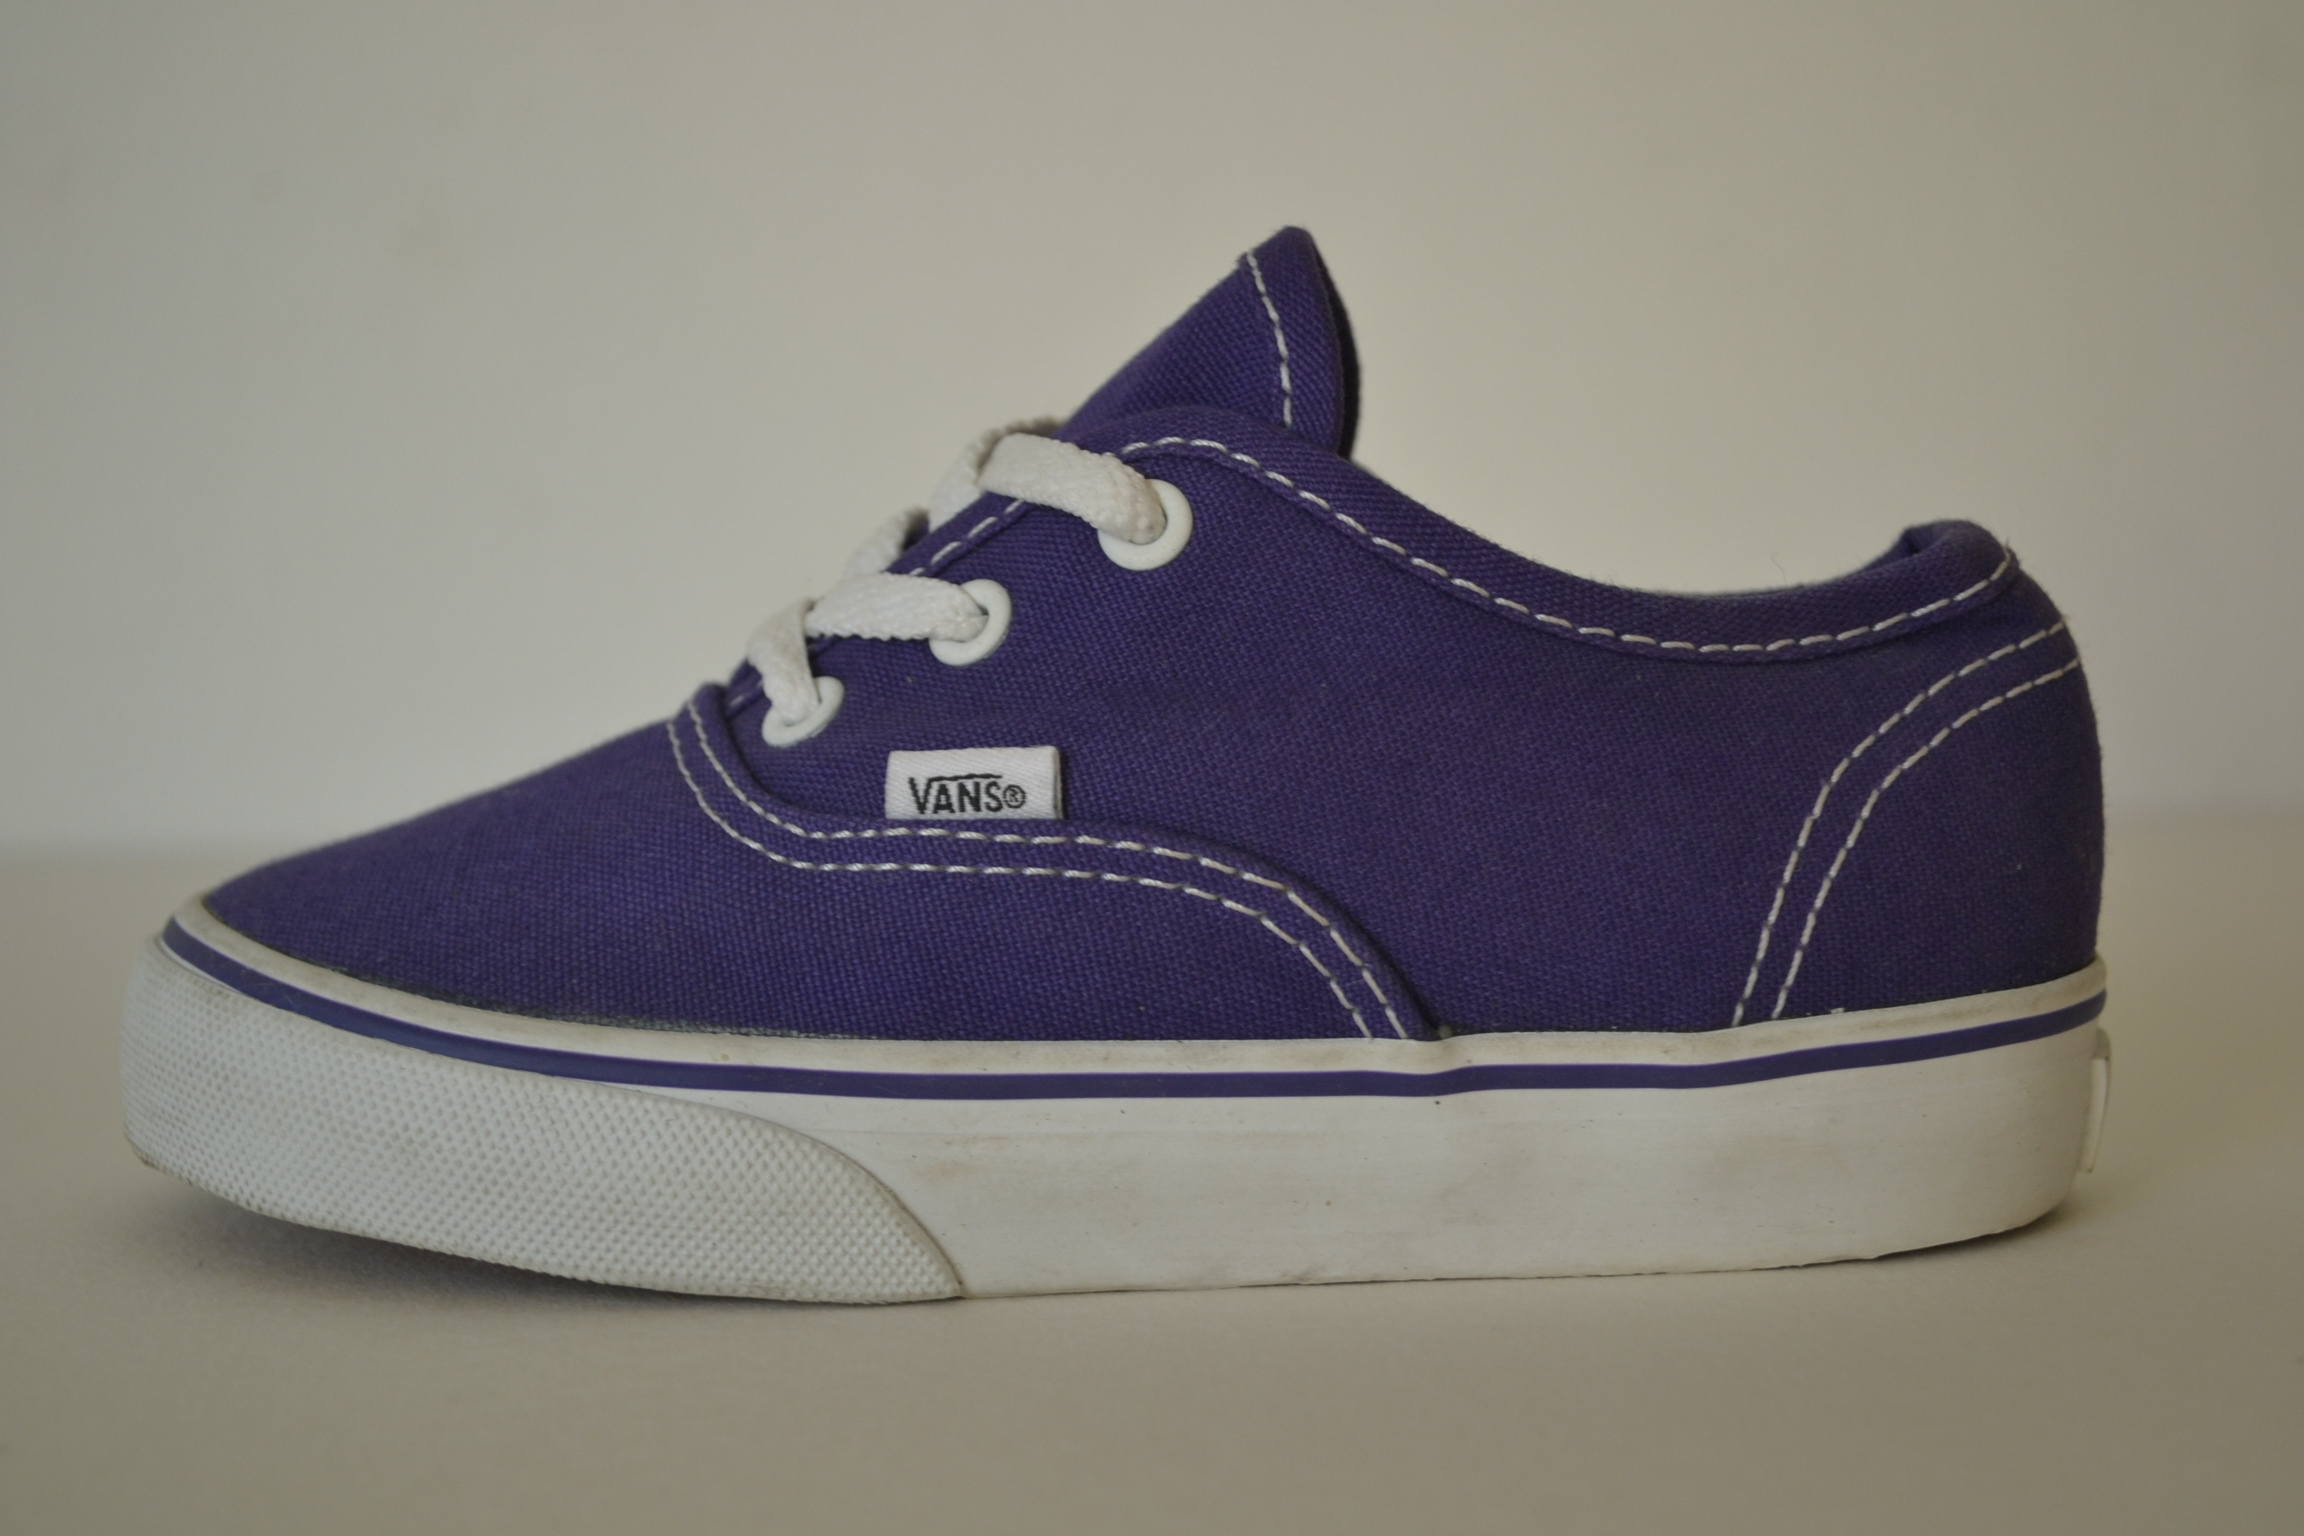 BUTY VANS OFF THE WALL ROZMIAR 26.5